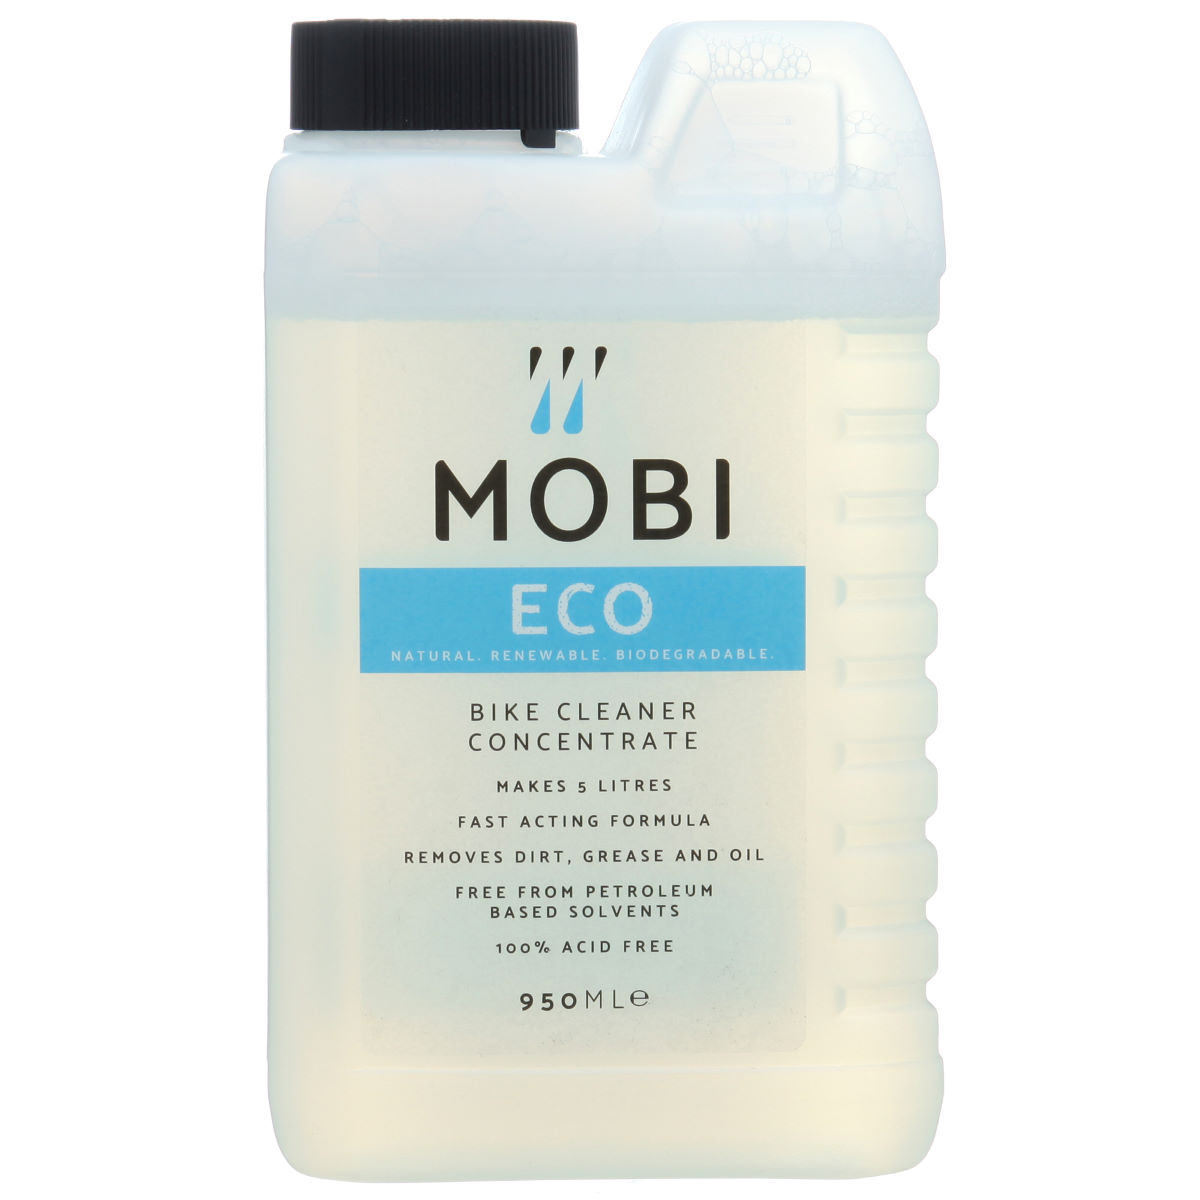 Mobi Mobi Eco Bike Cleaner Concentrate 950ml   Cleaning Products